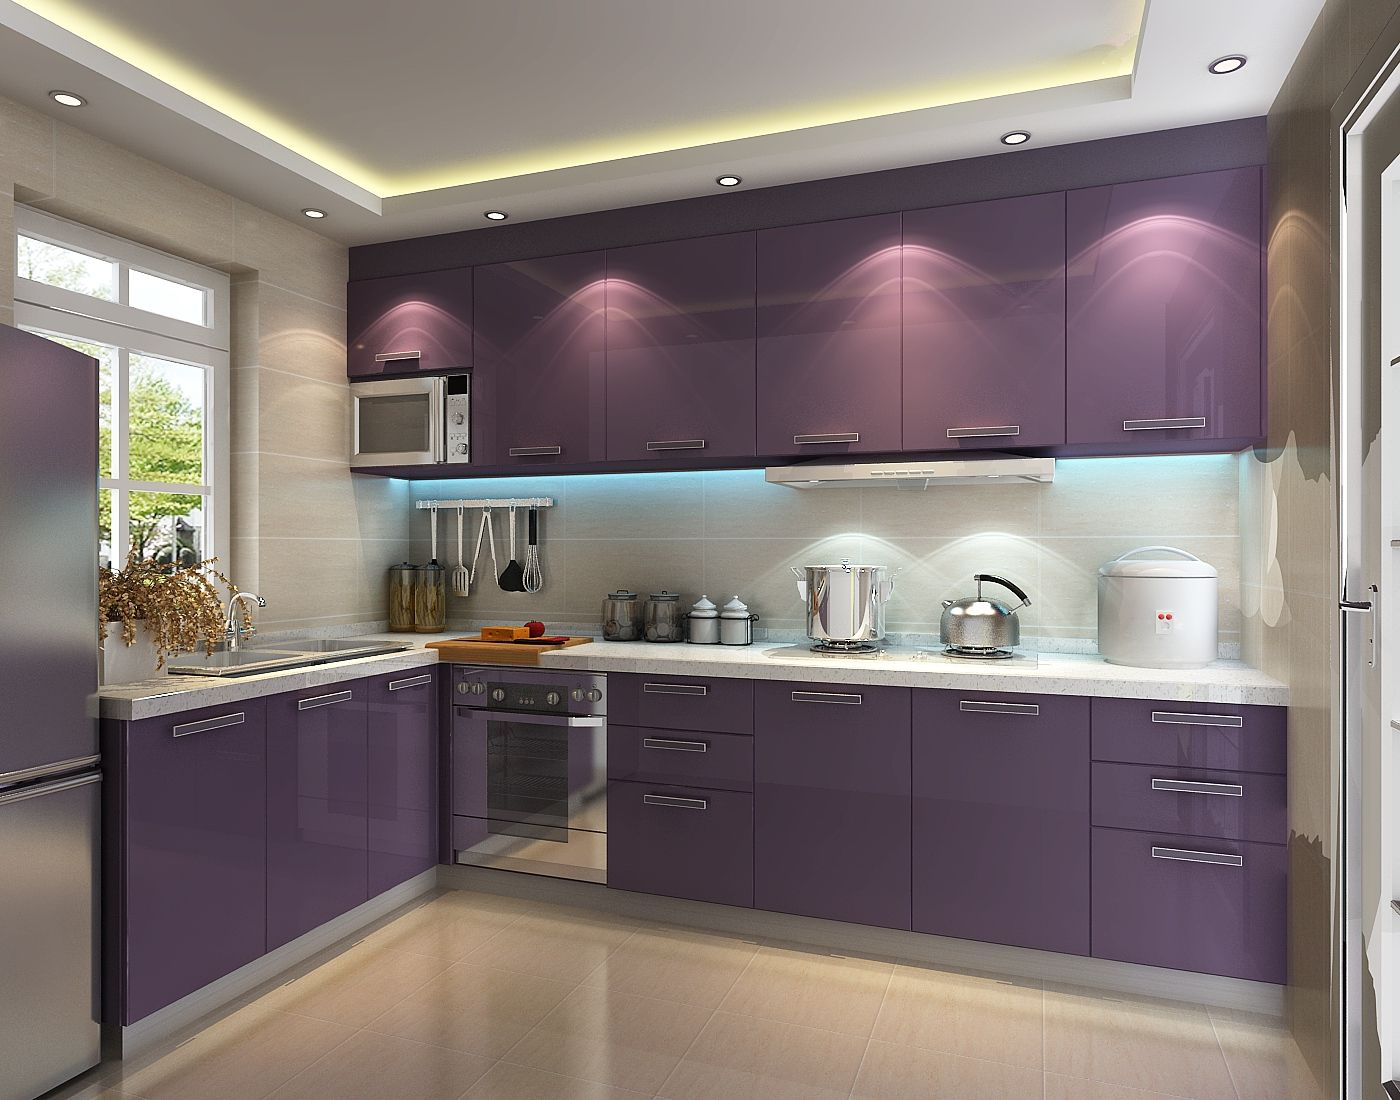 Purple East High Gloss PVC Kitchen Cabinet Part 17